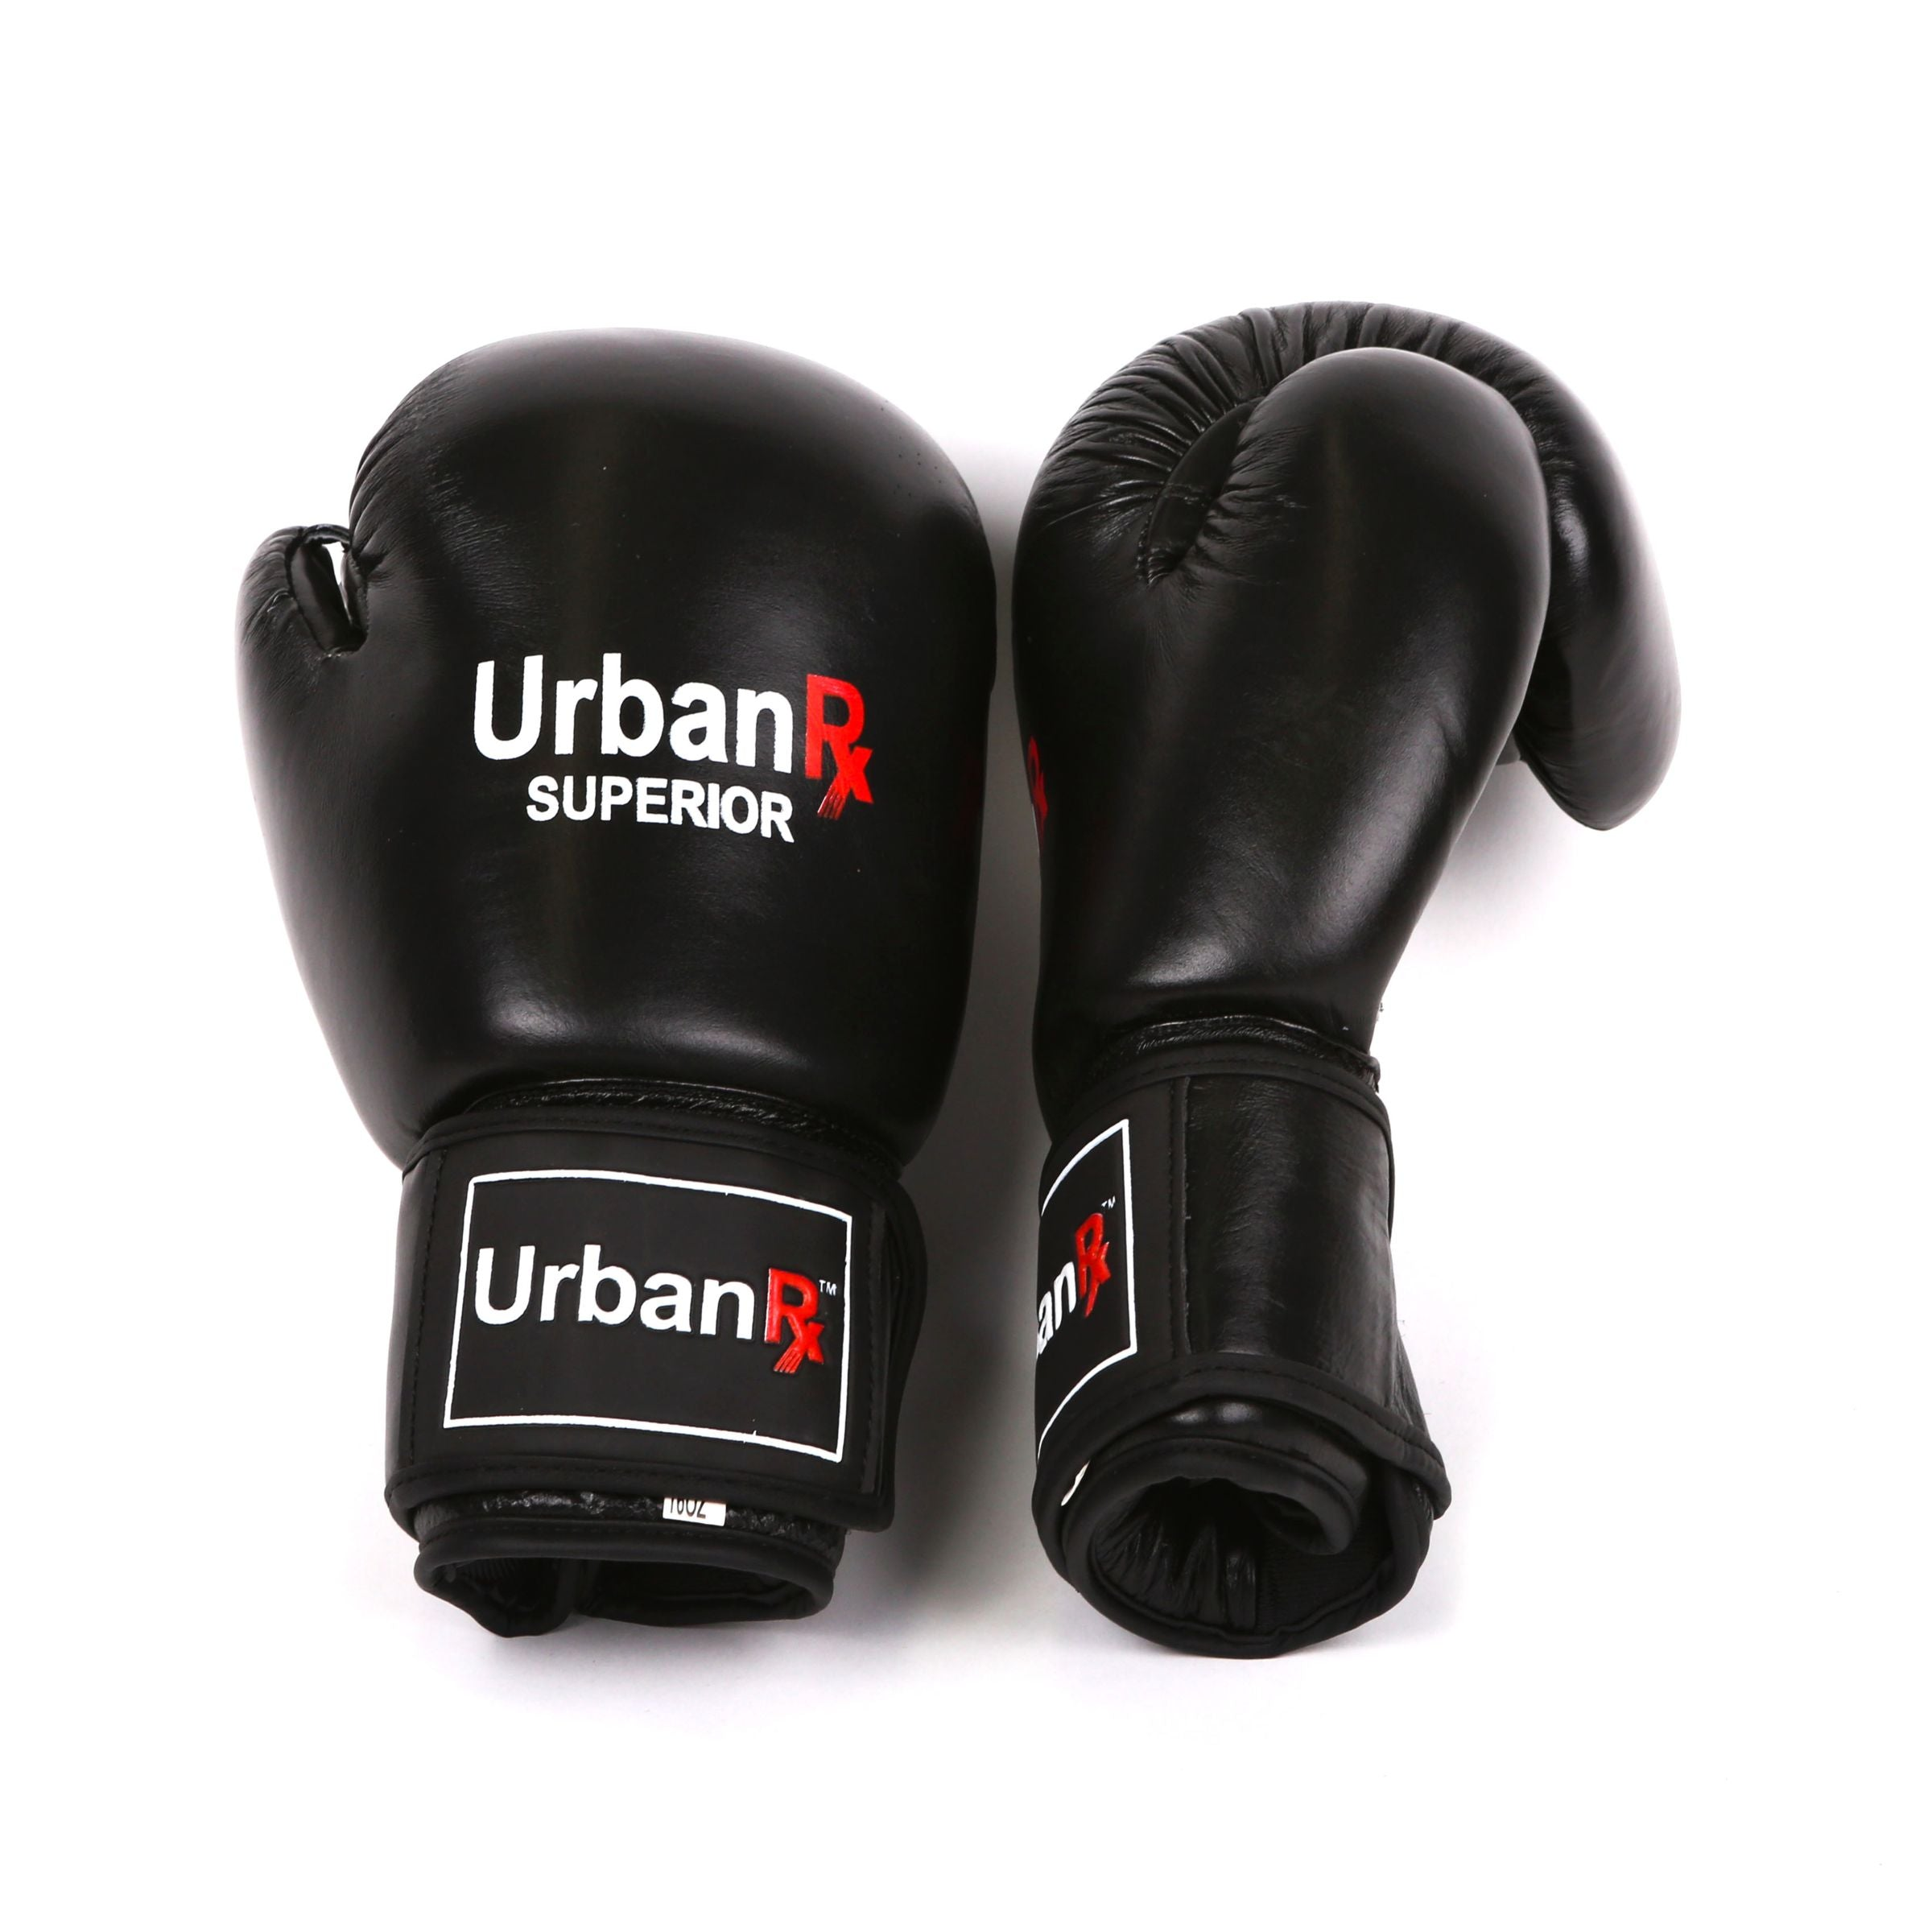 Urban Black Superior Boxing Gloves